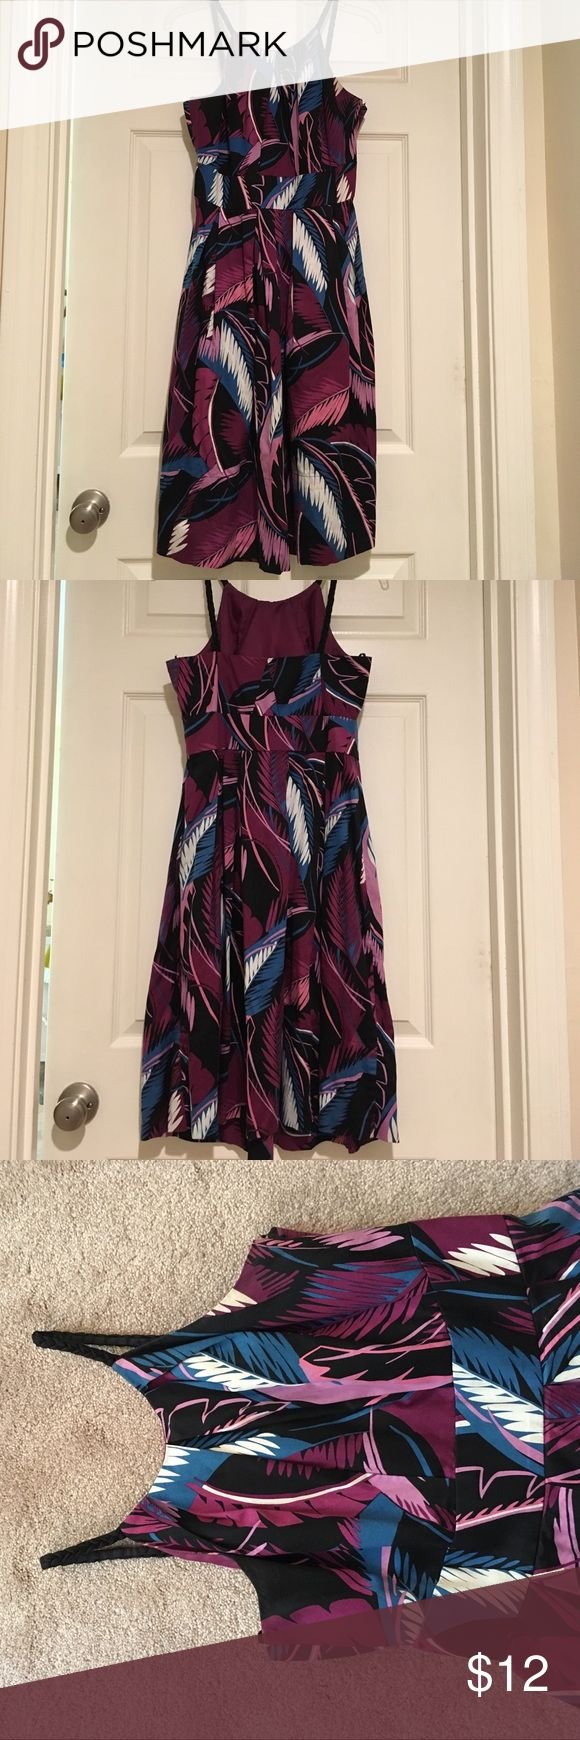 Donna Ricco New York summer dress • size 8 This bold print cotton summer dress is fun and comfortable to wear! Perfect for a summer gathering or event. And it has pockets! 39in long. Donna Ricco Dresses